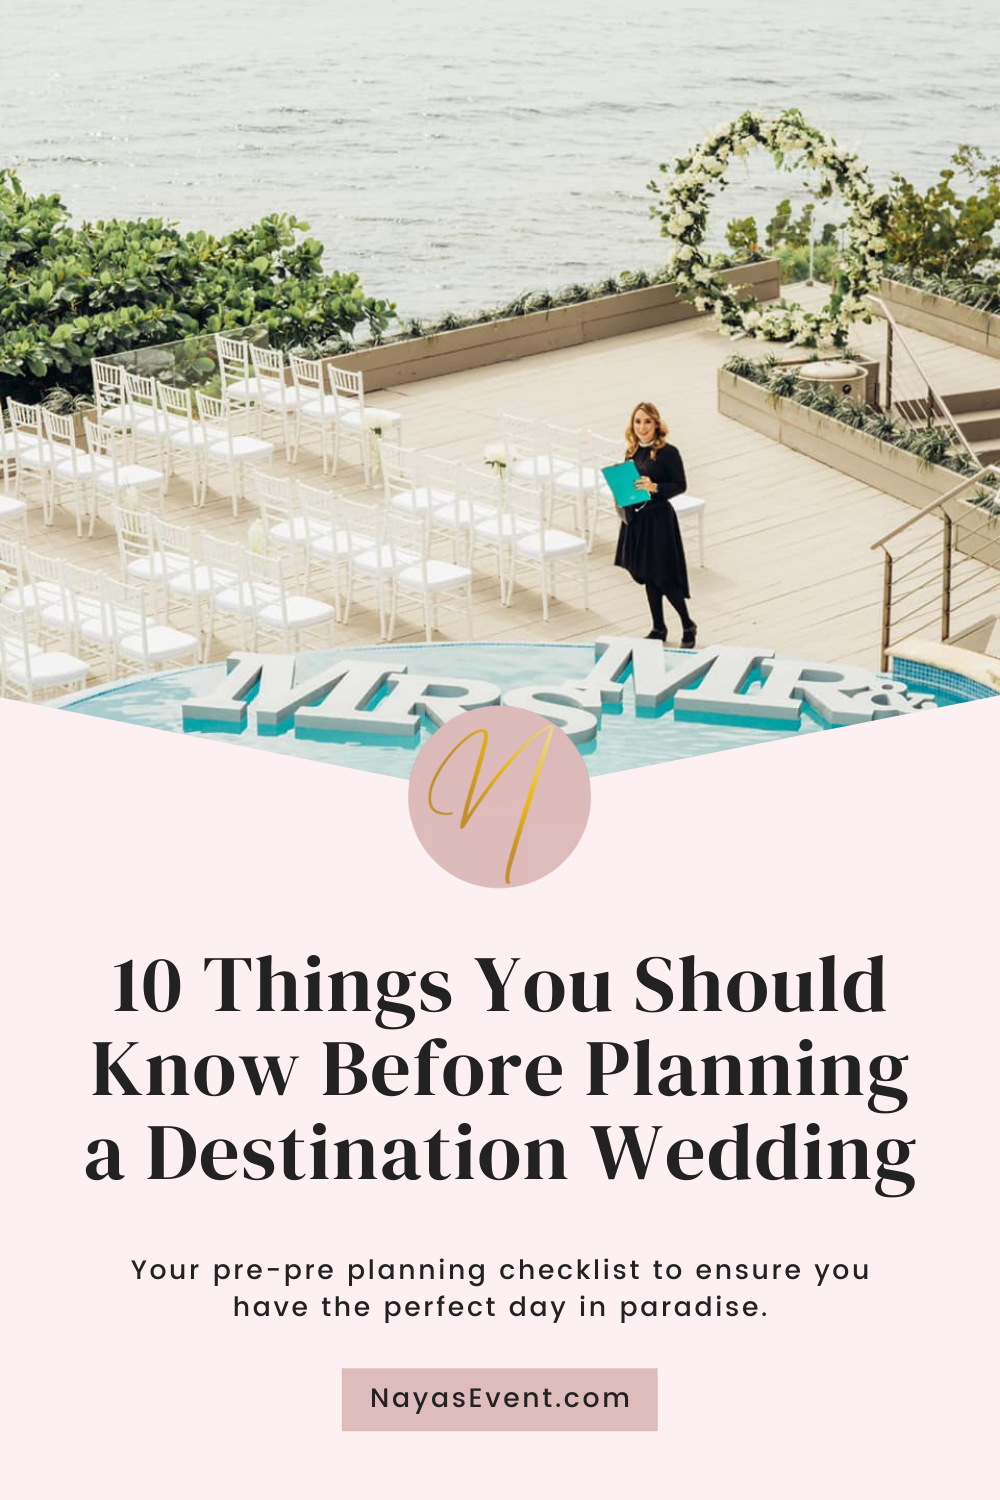 10 Things You Should Know Before Planning a Destination Wedding | NayasEvent.com